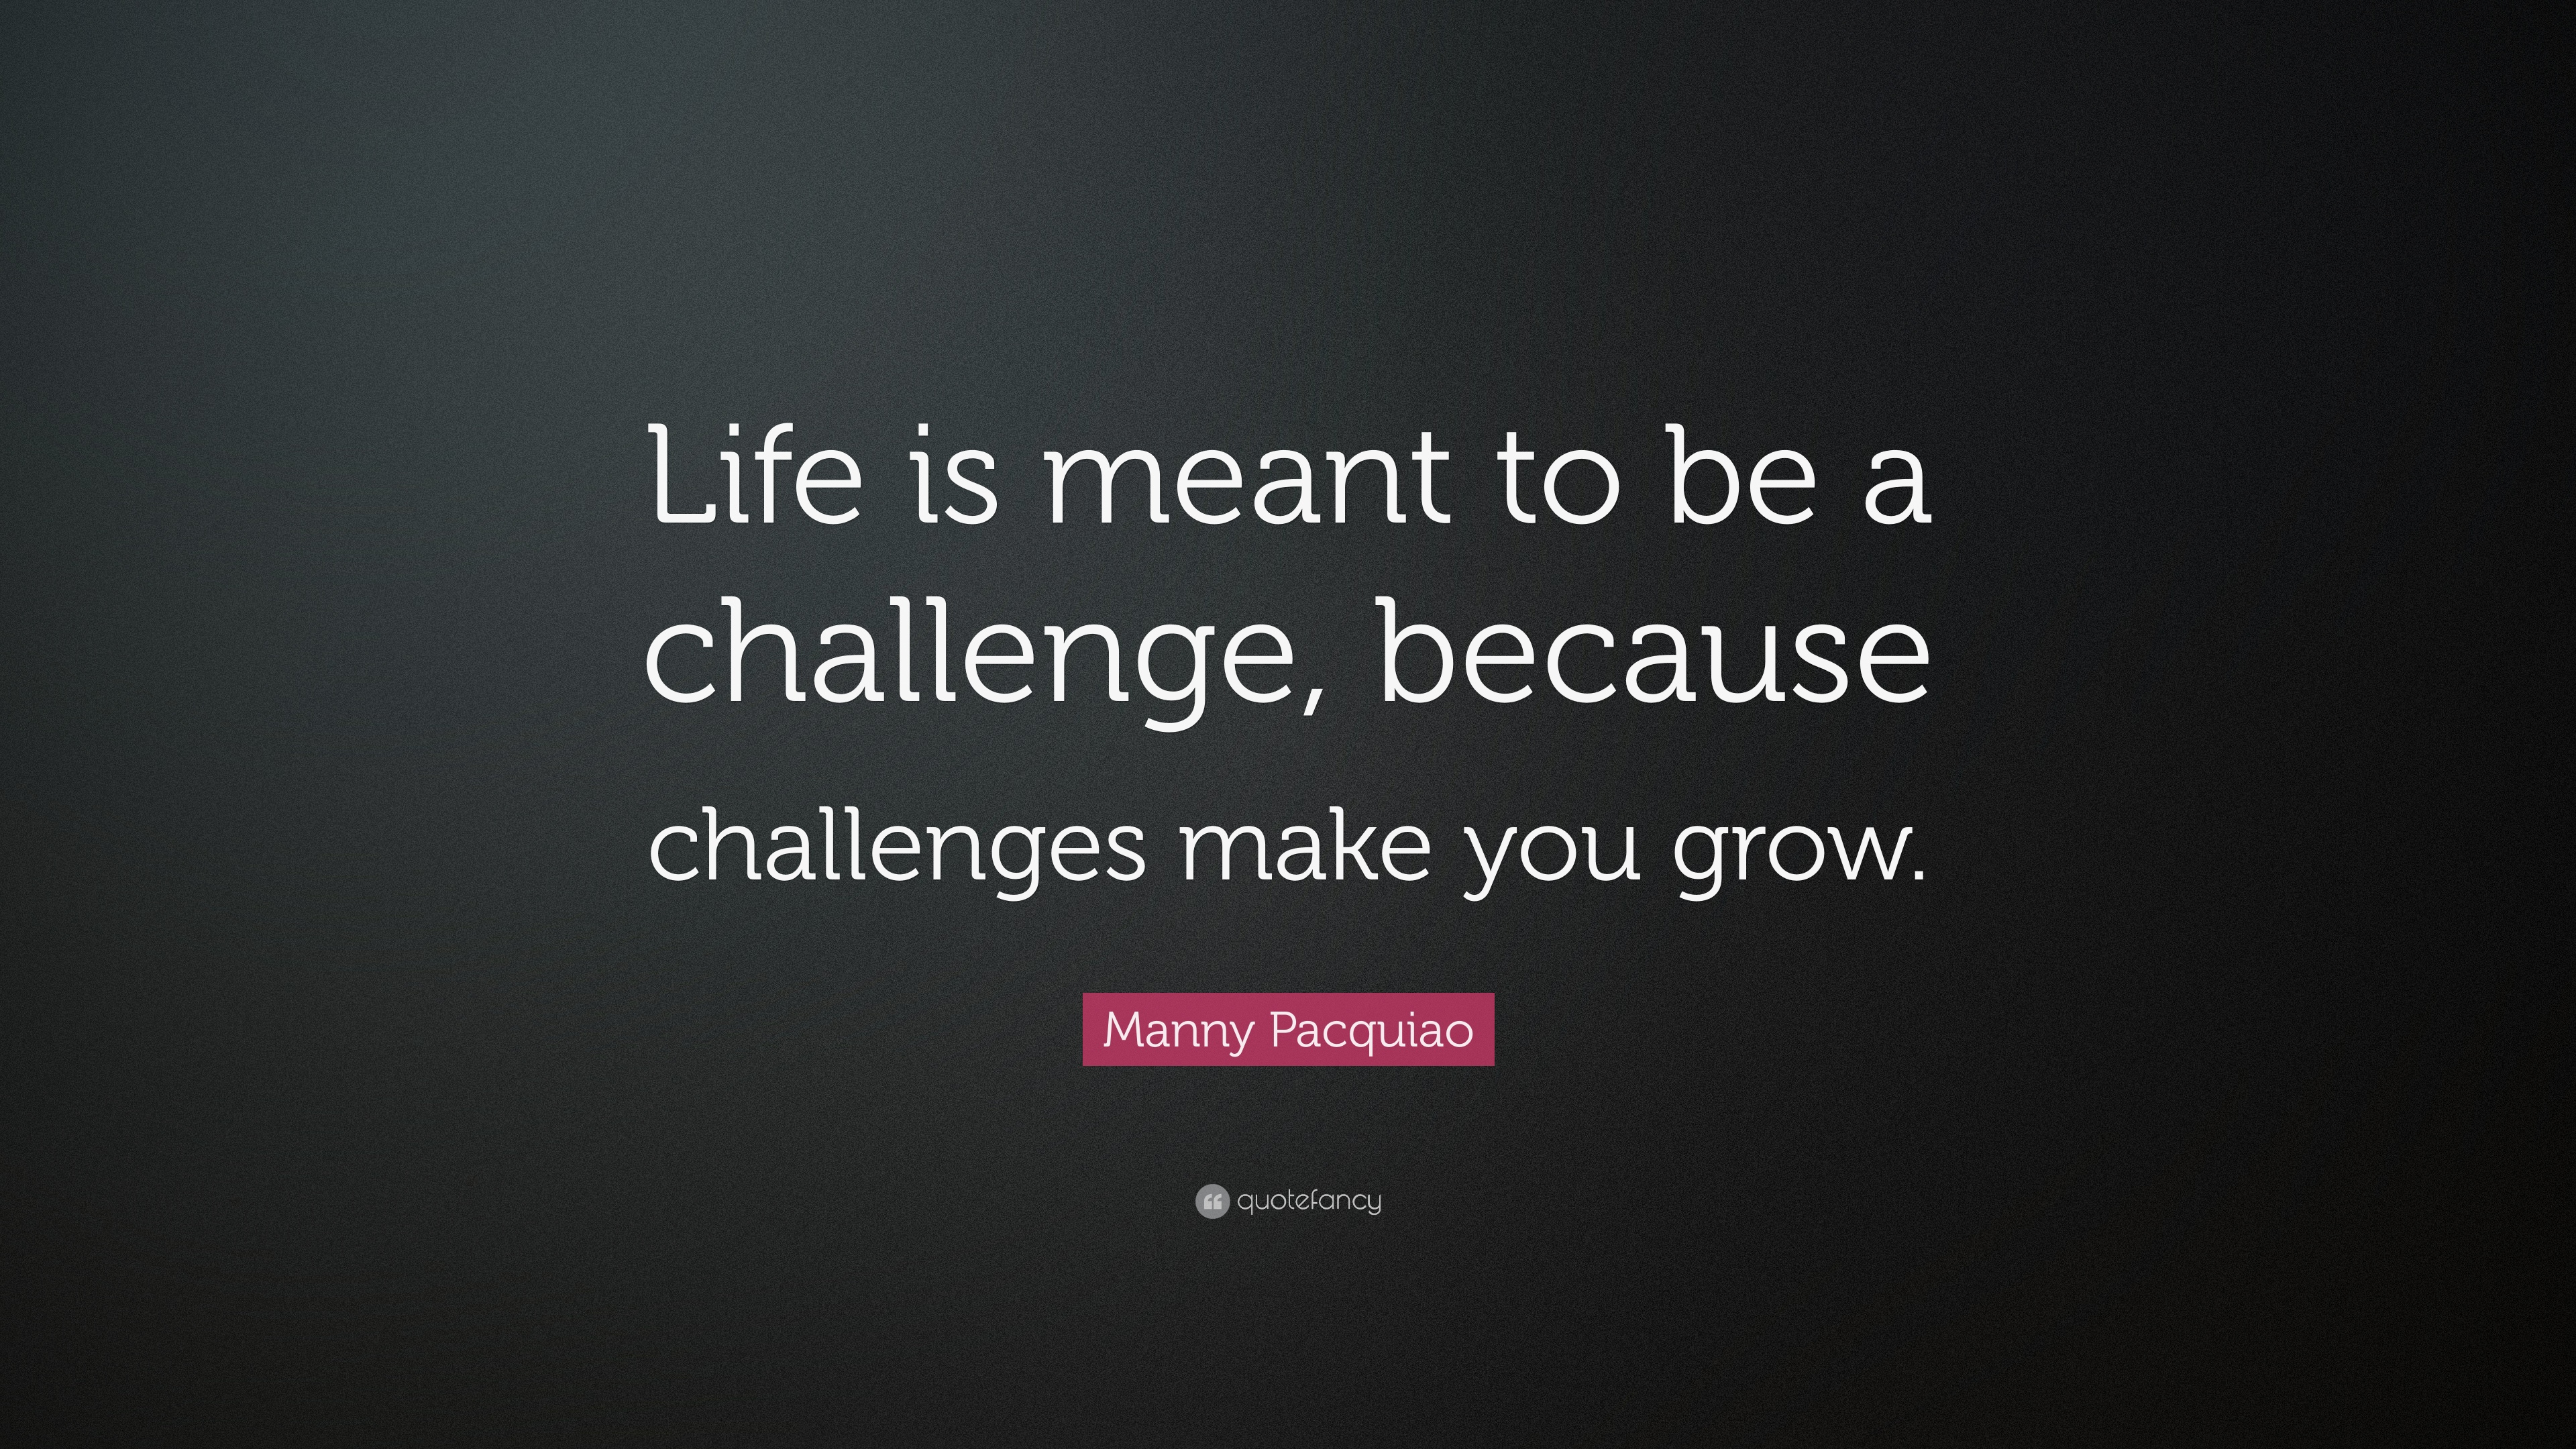 Manny Pacquiao Quote Life Is Meant To Be A Challenge Because